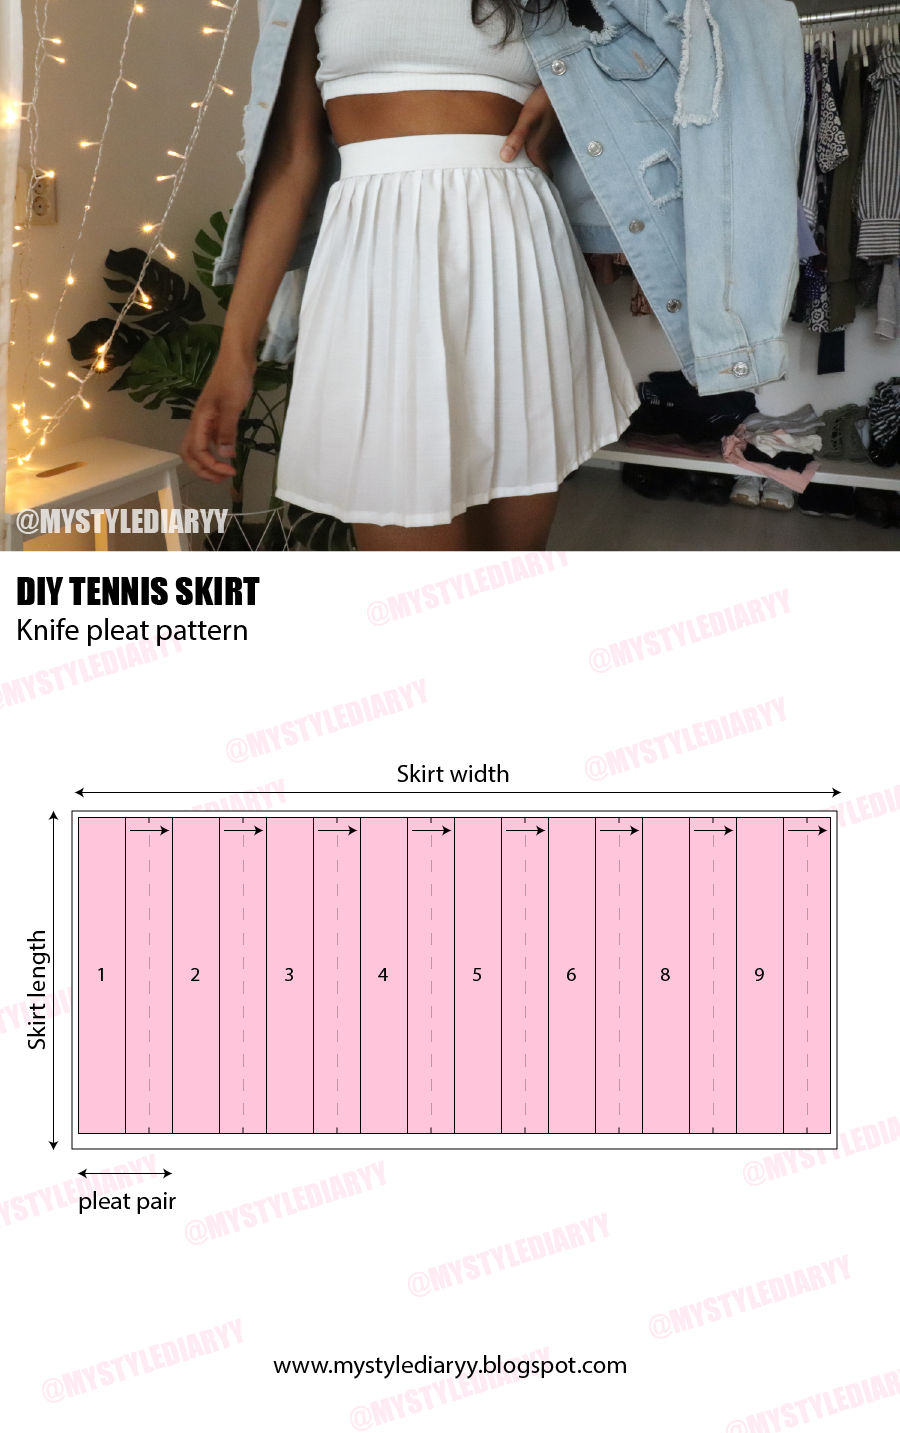 A sewing pattern reference of the tennis skirt